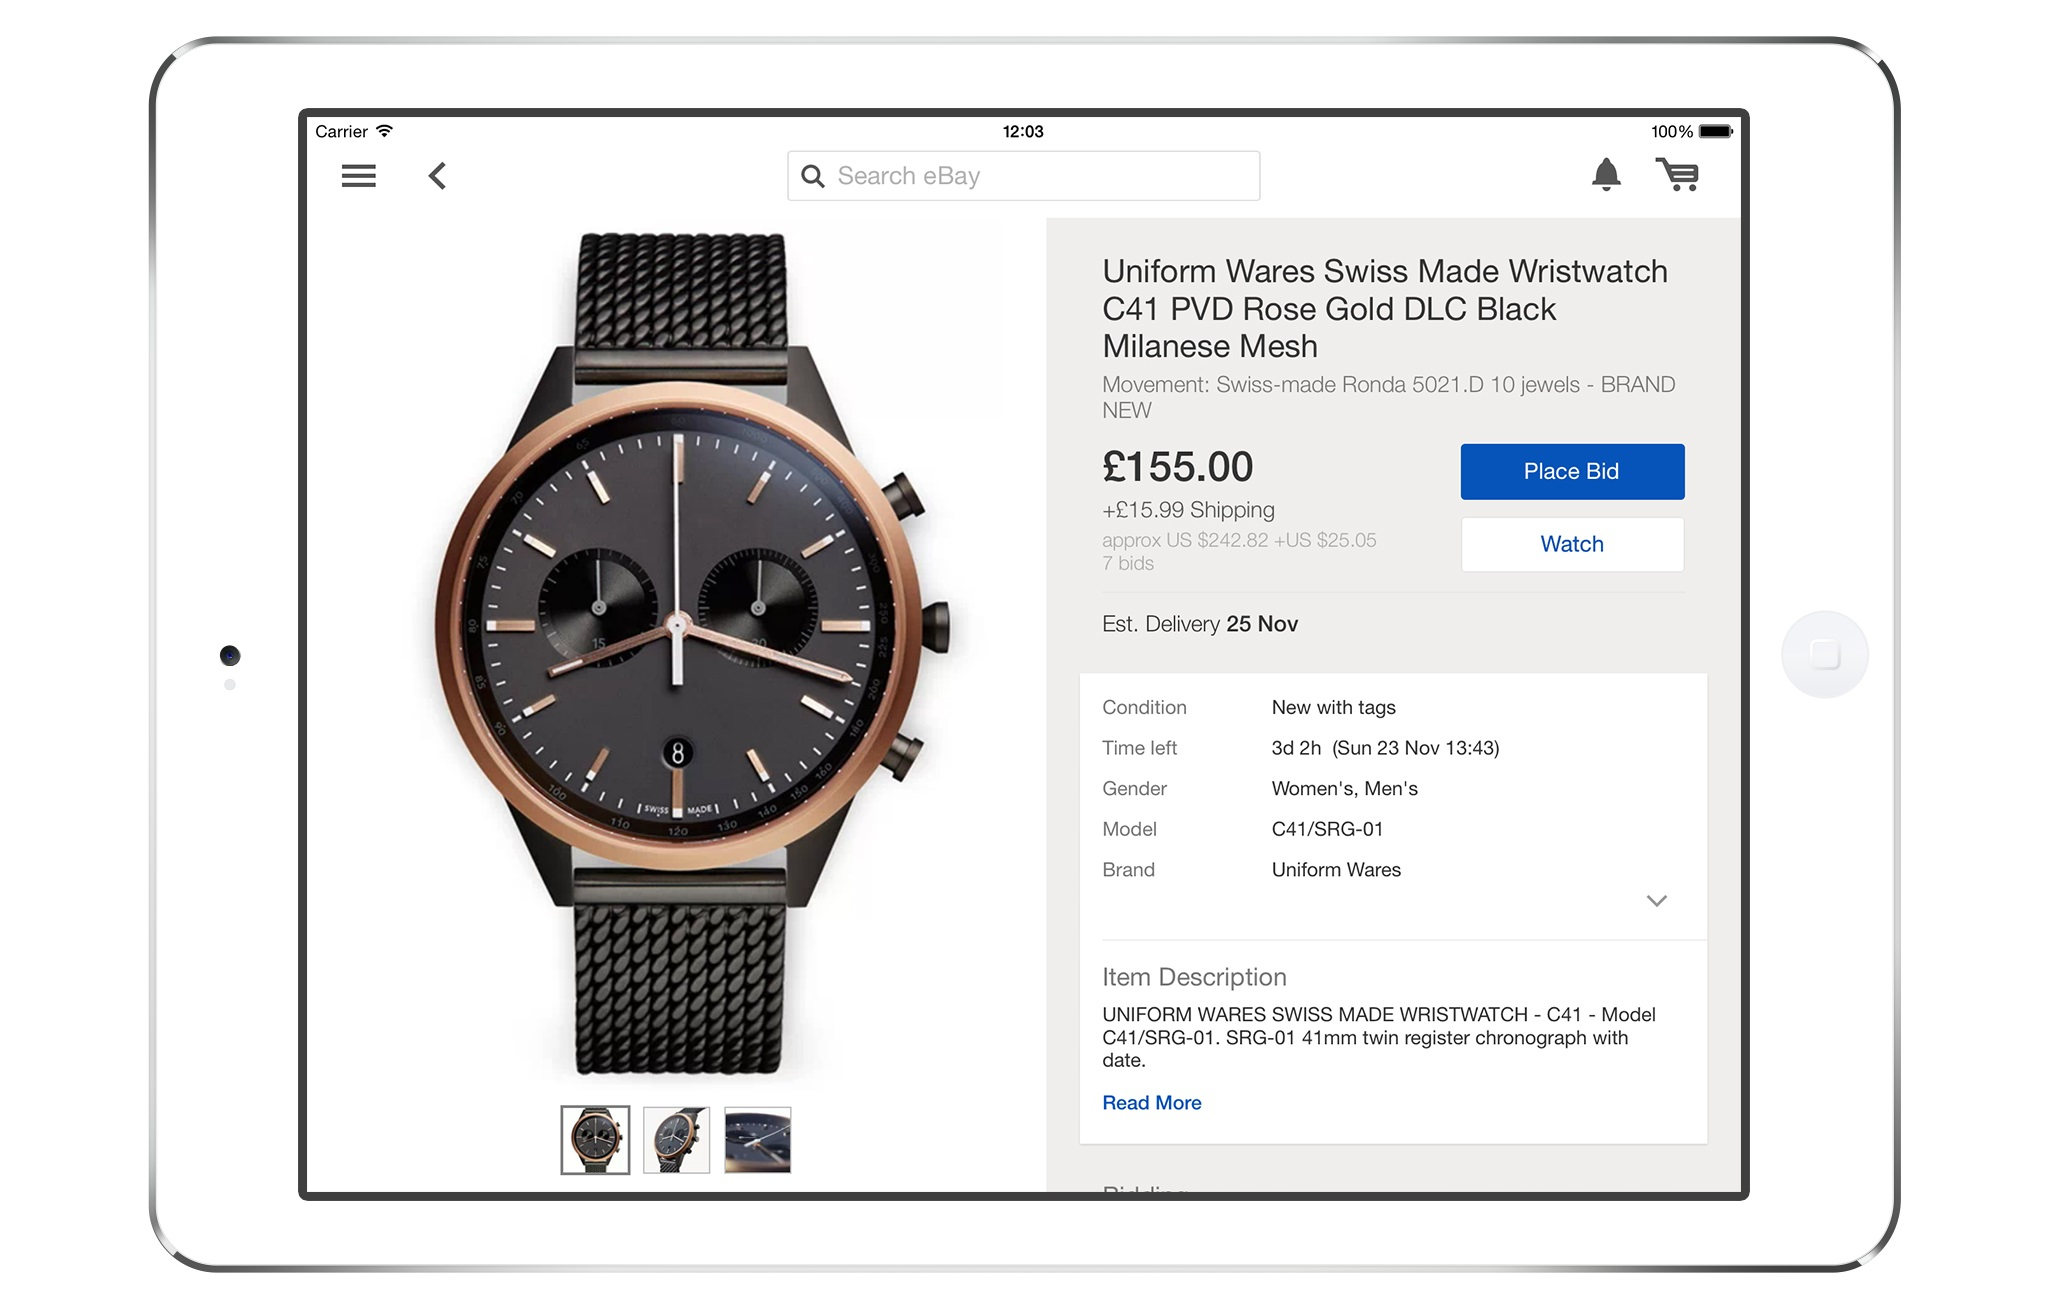 Ebay S Ipad App Gets Bigger Images Improved Profiles And A More